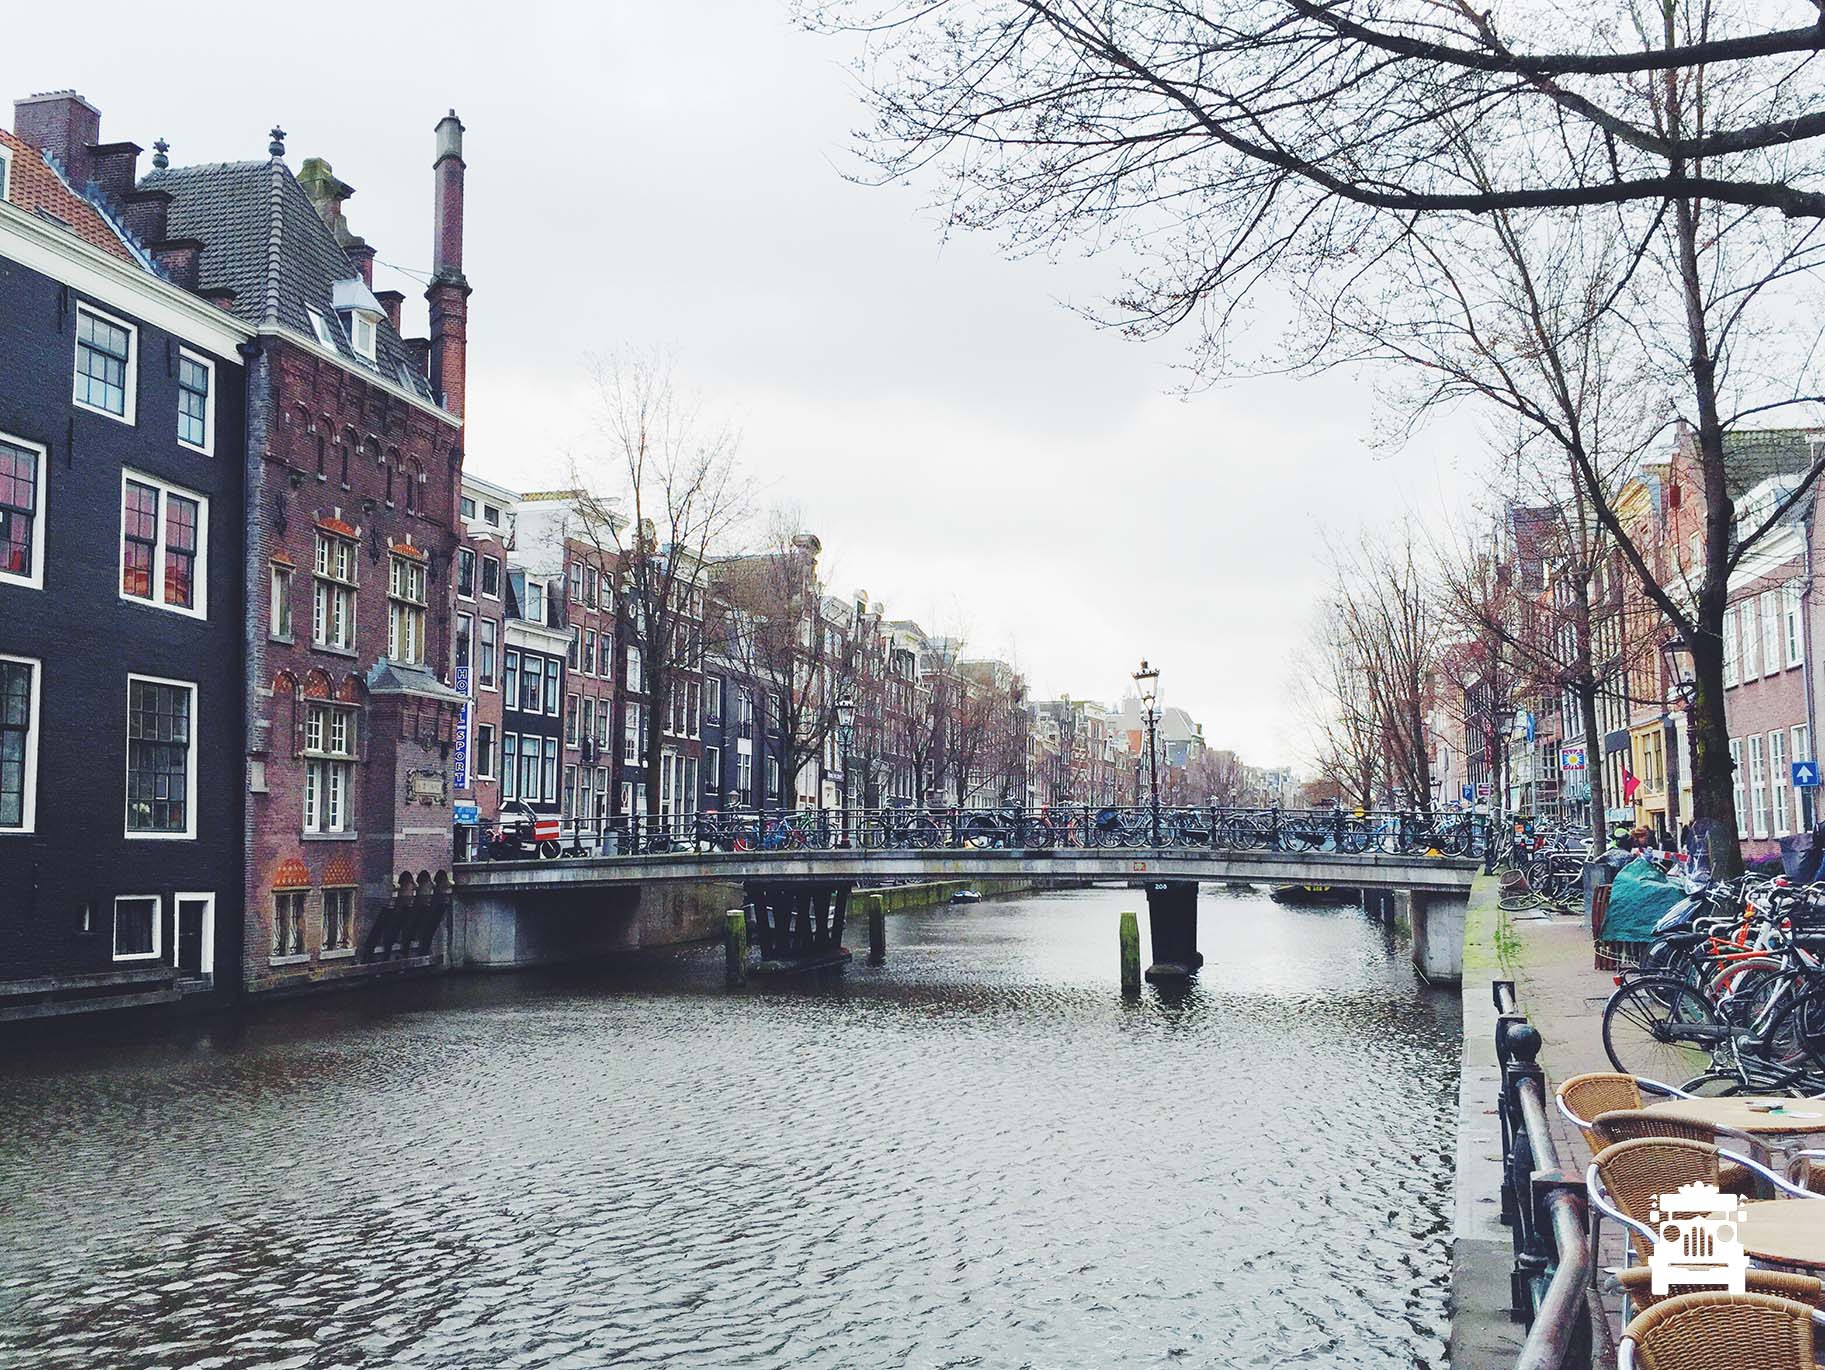 Amsterdam, we shall be back